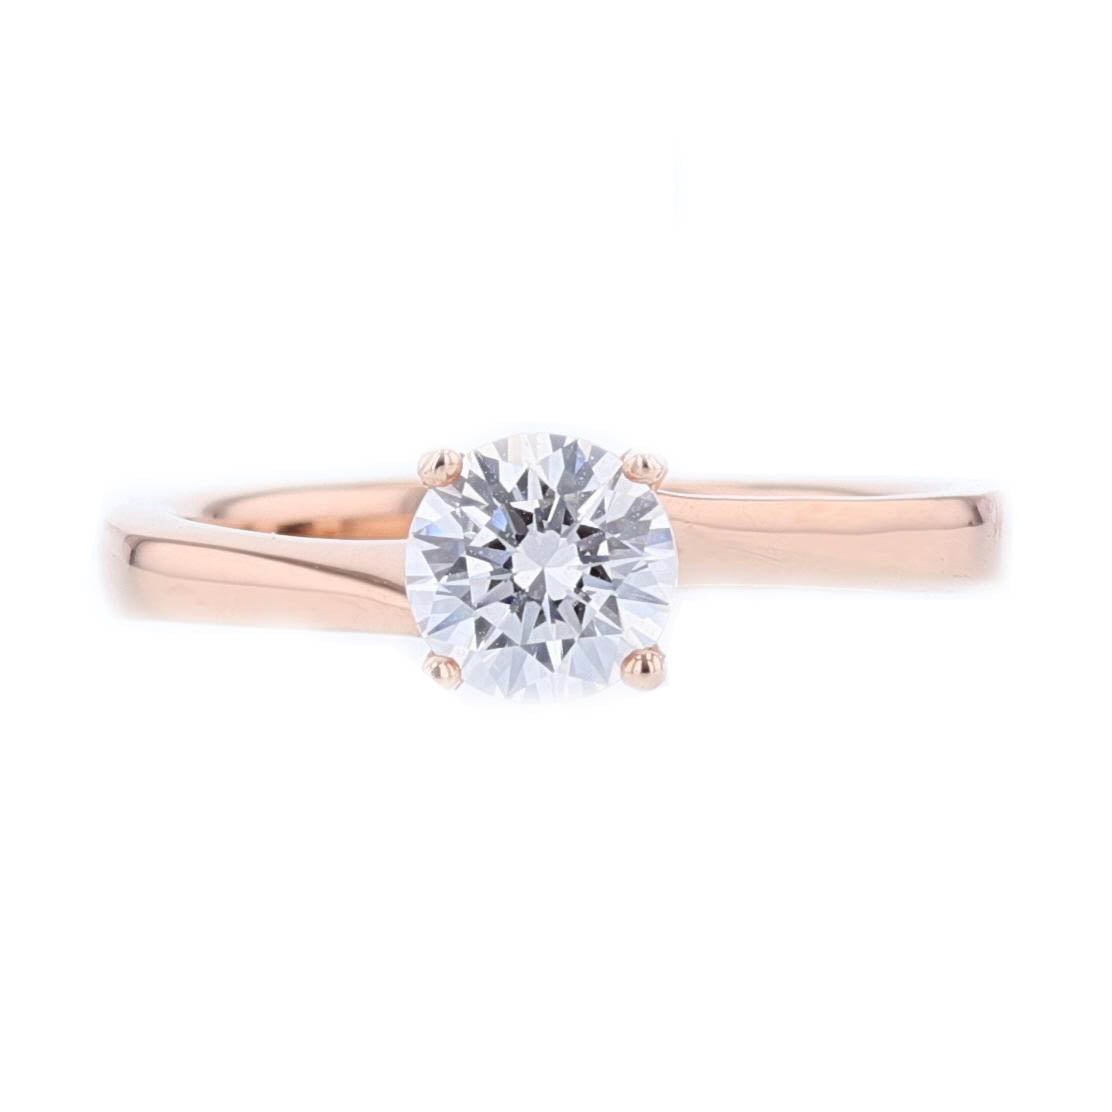 14K Rose Gold Round Solitaire Engagement Ring - Nazarelle